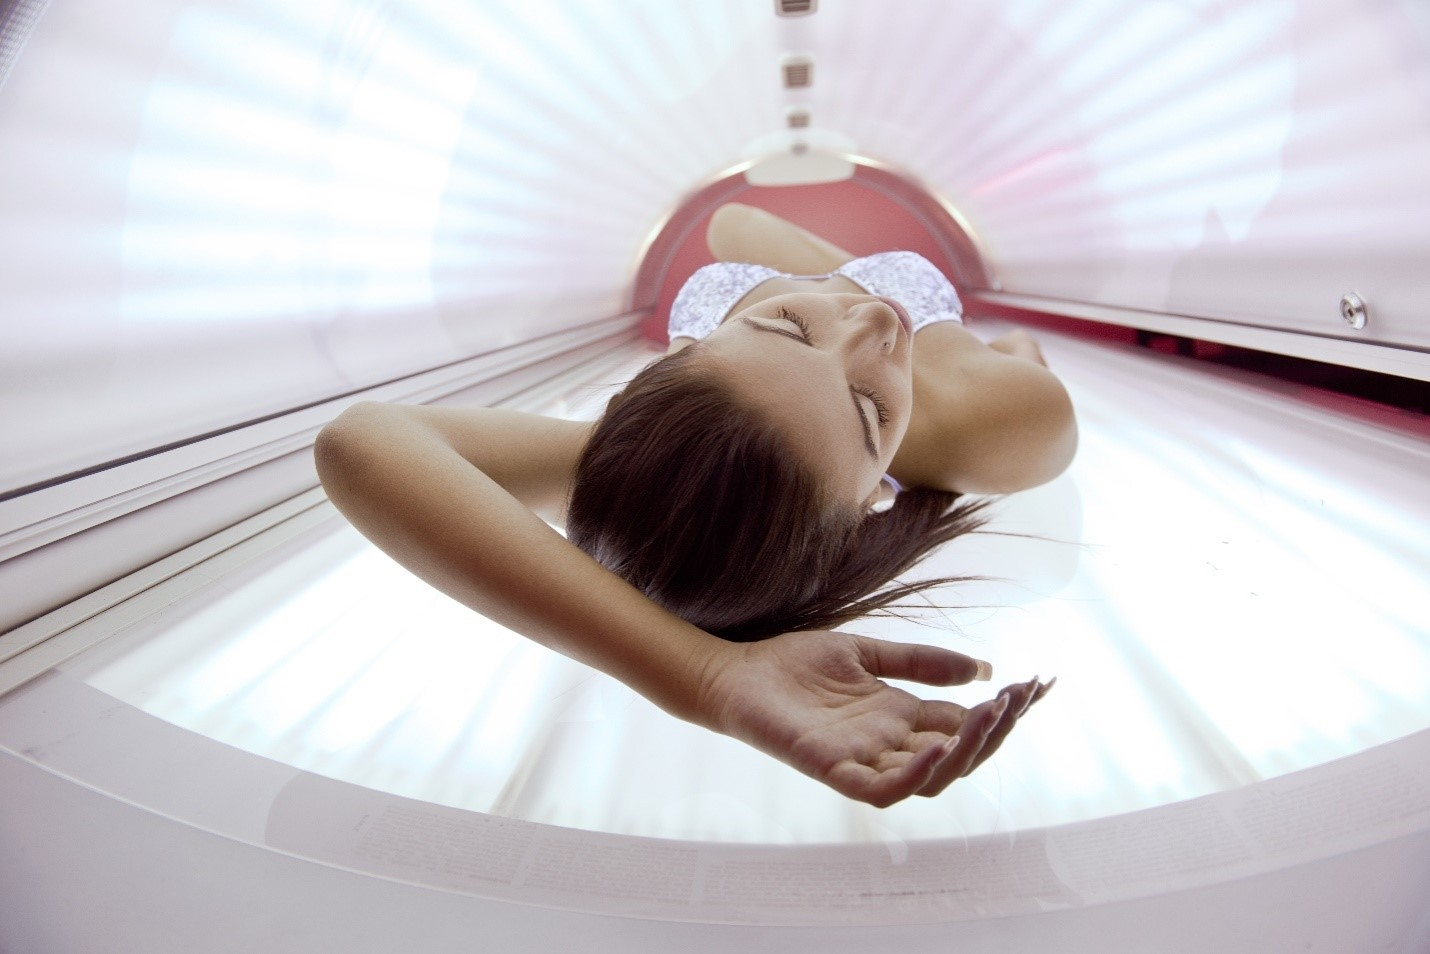 A young woman lying in a tanning bed